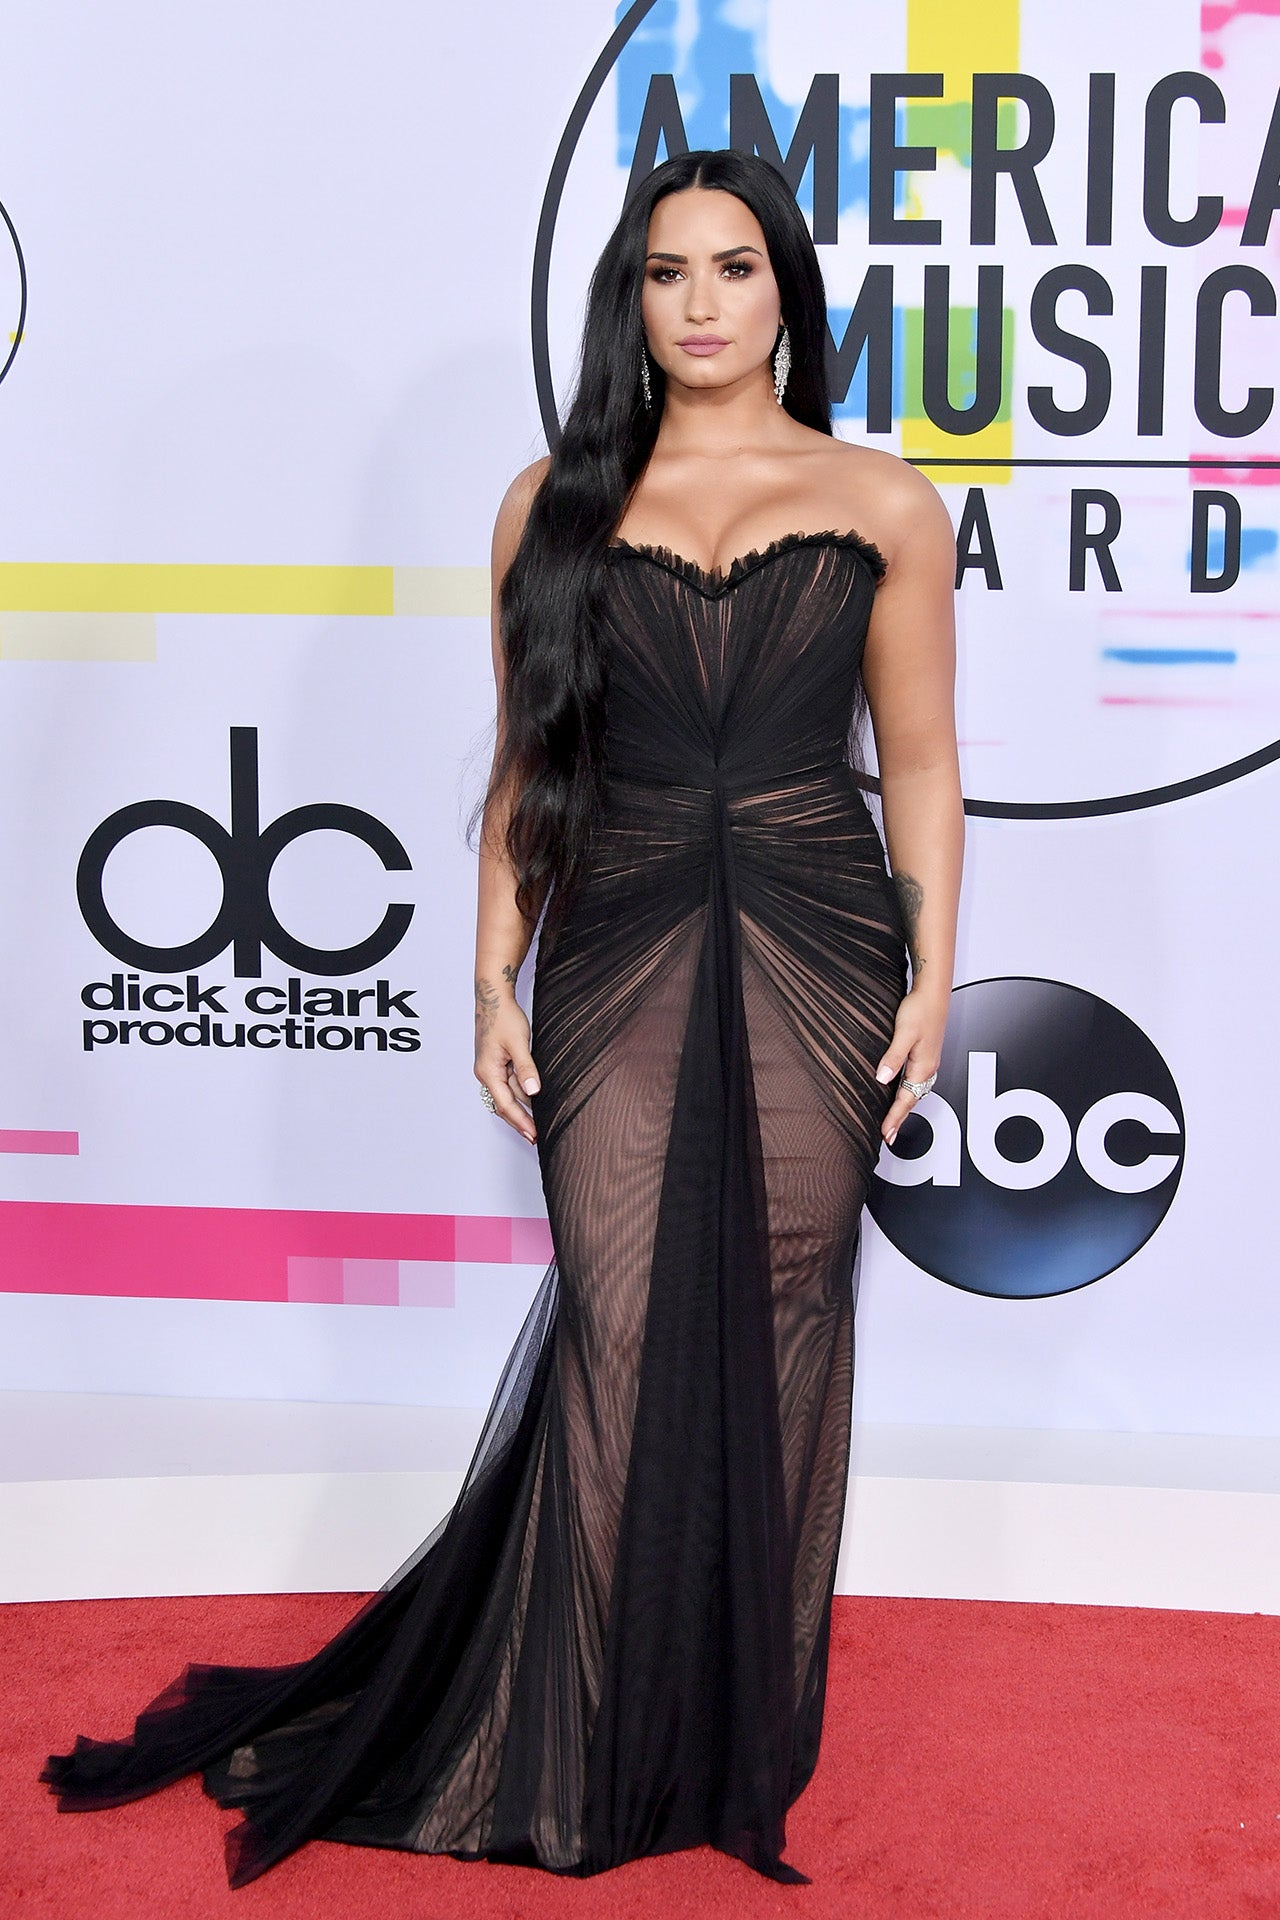 a7e1e85f034 Demi Lovato at the AMAs